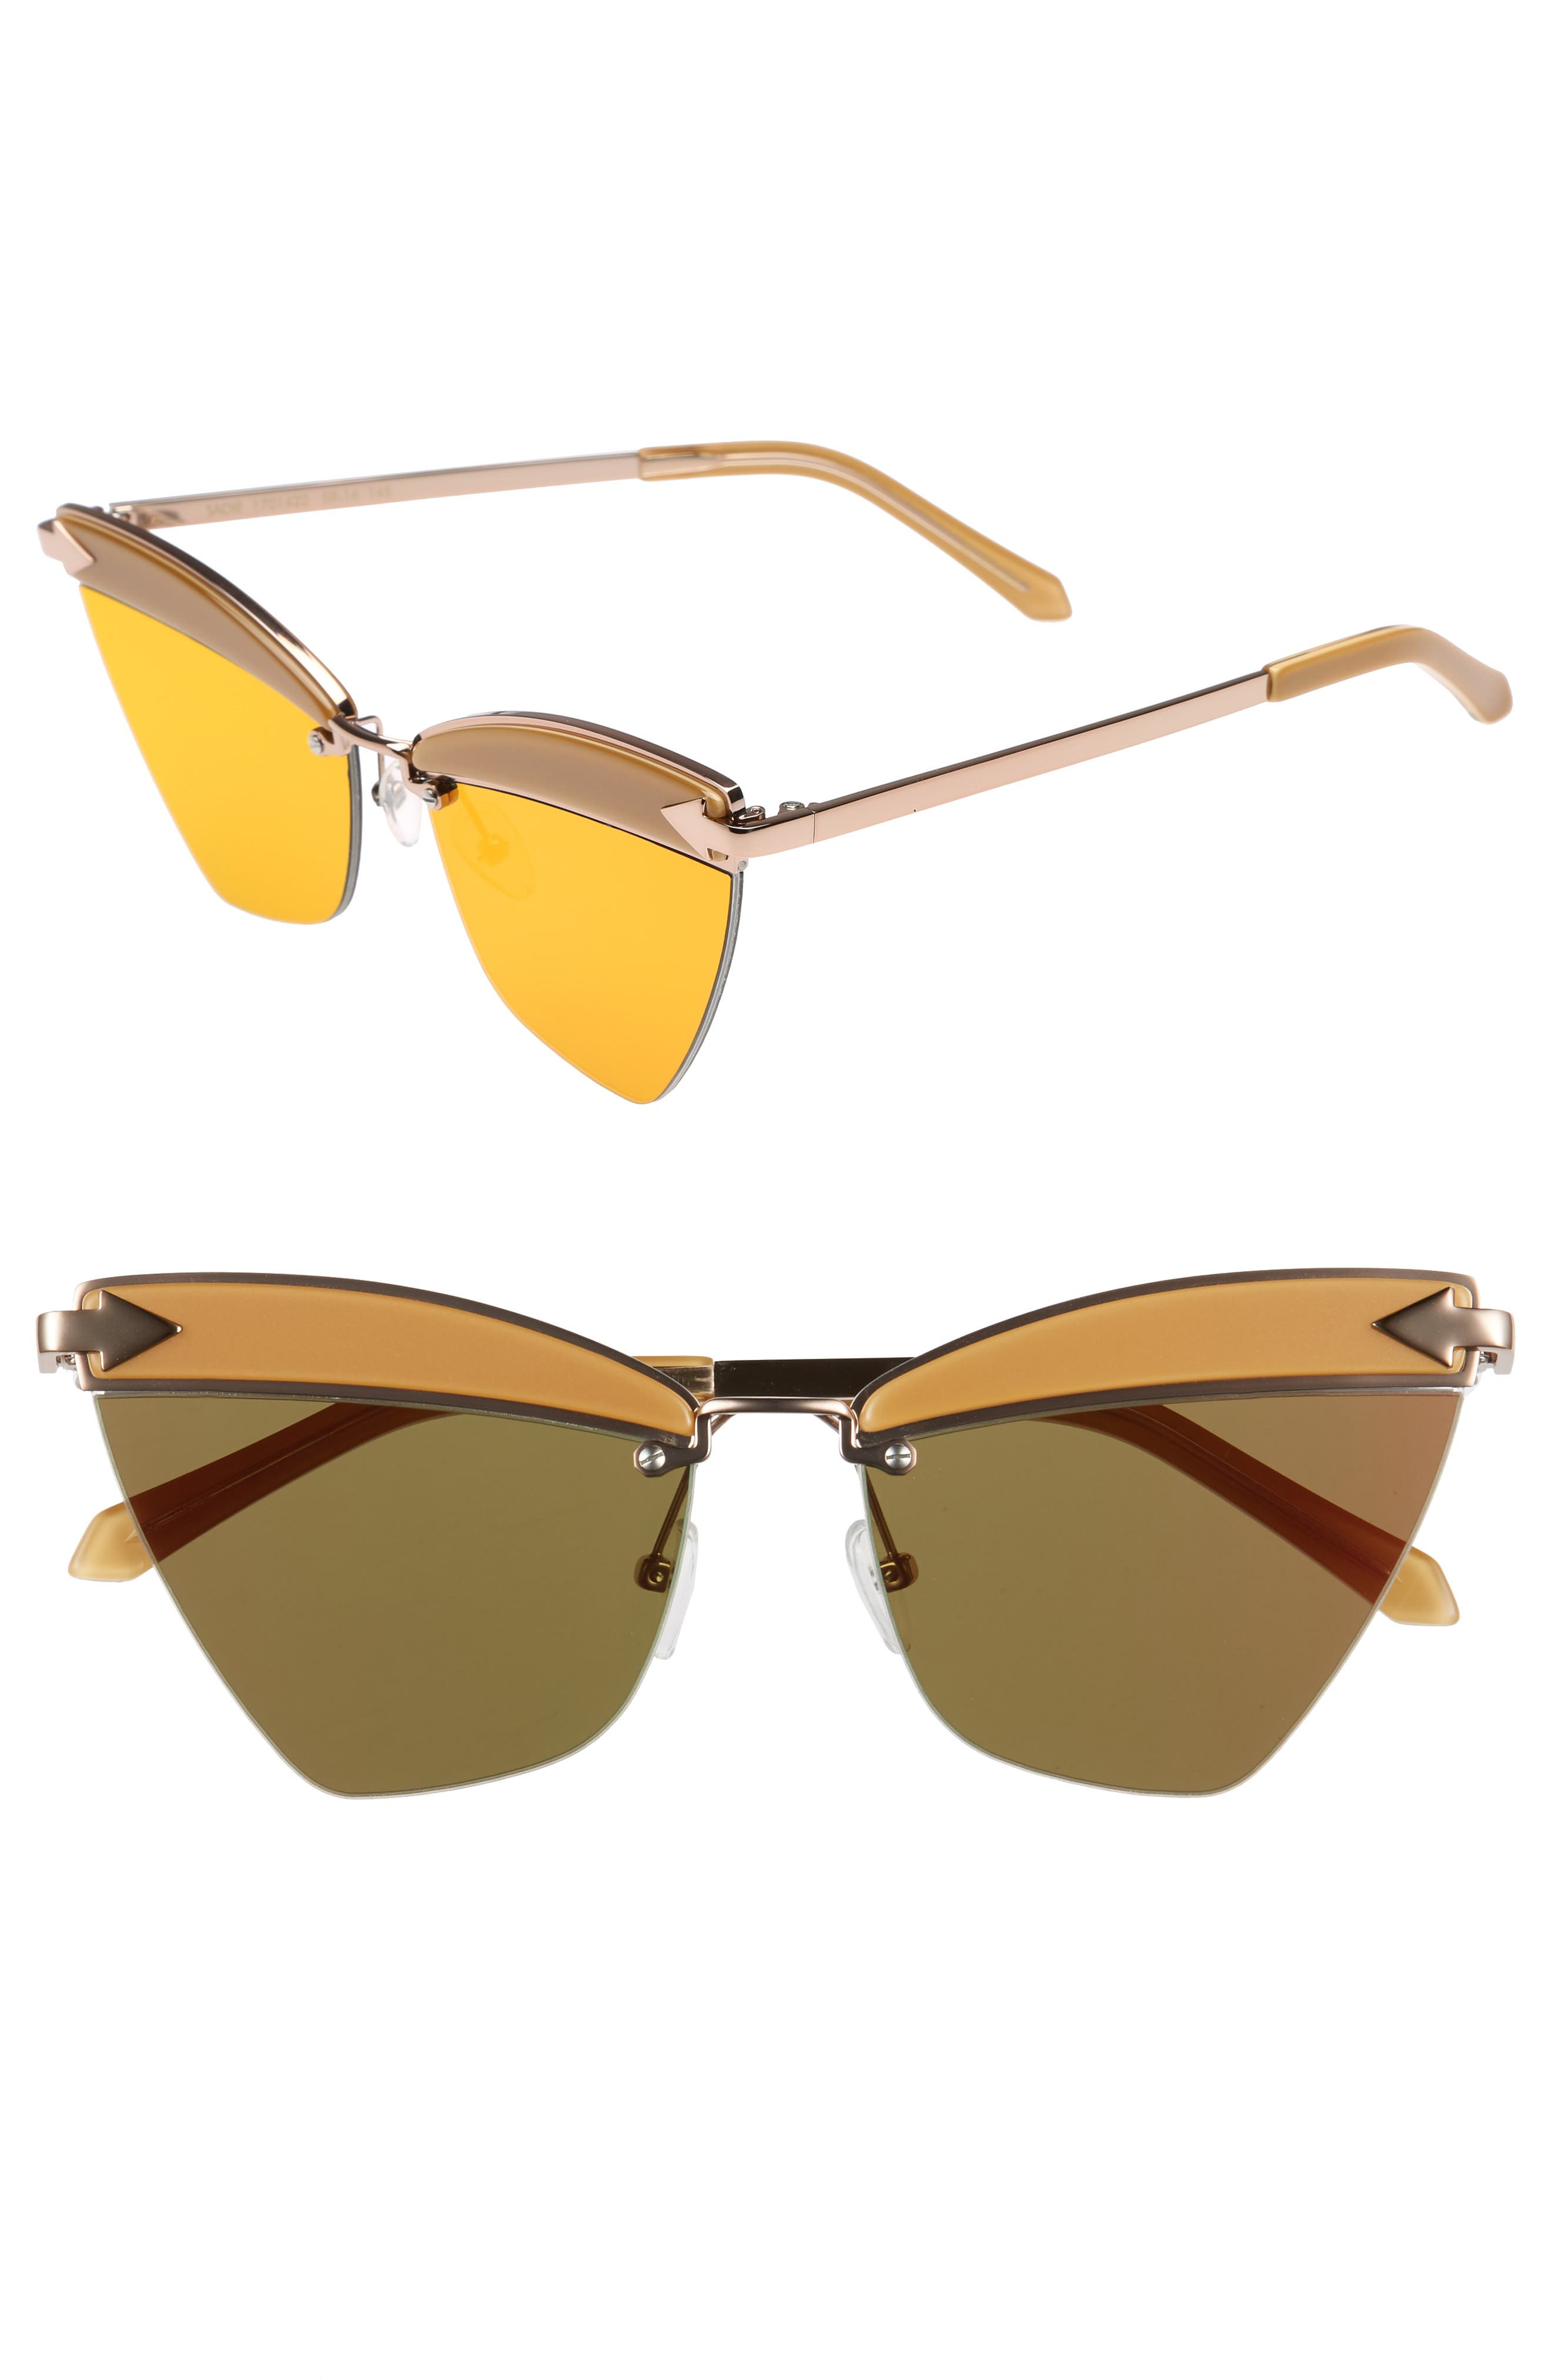 Karen Walker Sadie 59mm Sunglasses